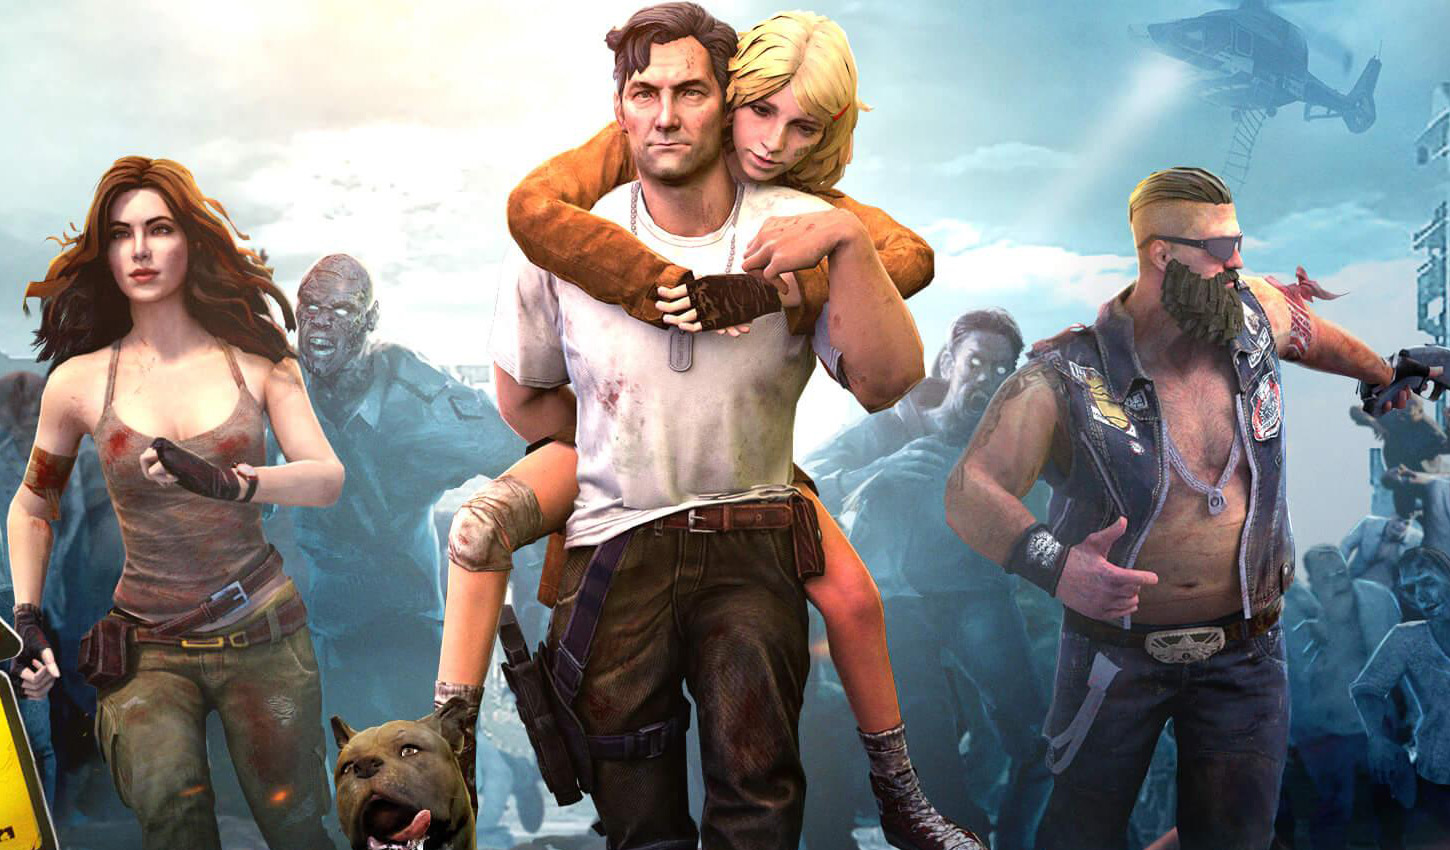 state of survival no 1 post apocalypse mobile game us 2020 lxPl2O